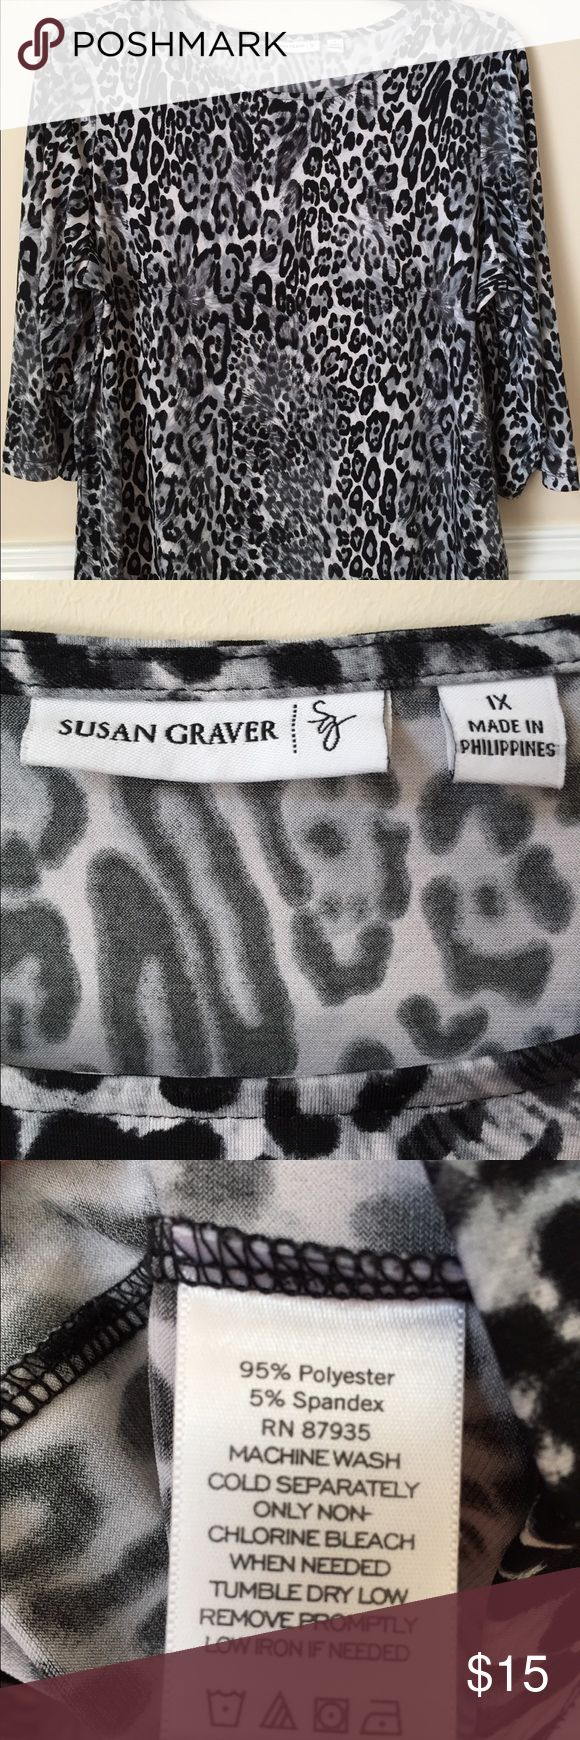 EUC Susan Graver Black & white animal print top 1X Excellent preowned condition Susan Graver animal print top. Three-quarter length sleeve's.  Does have some stretch. Susan Graver Tops